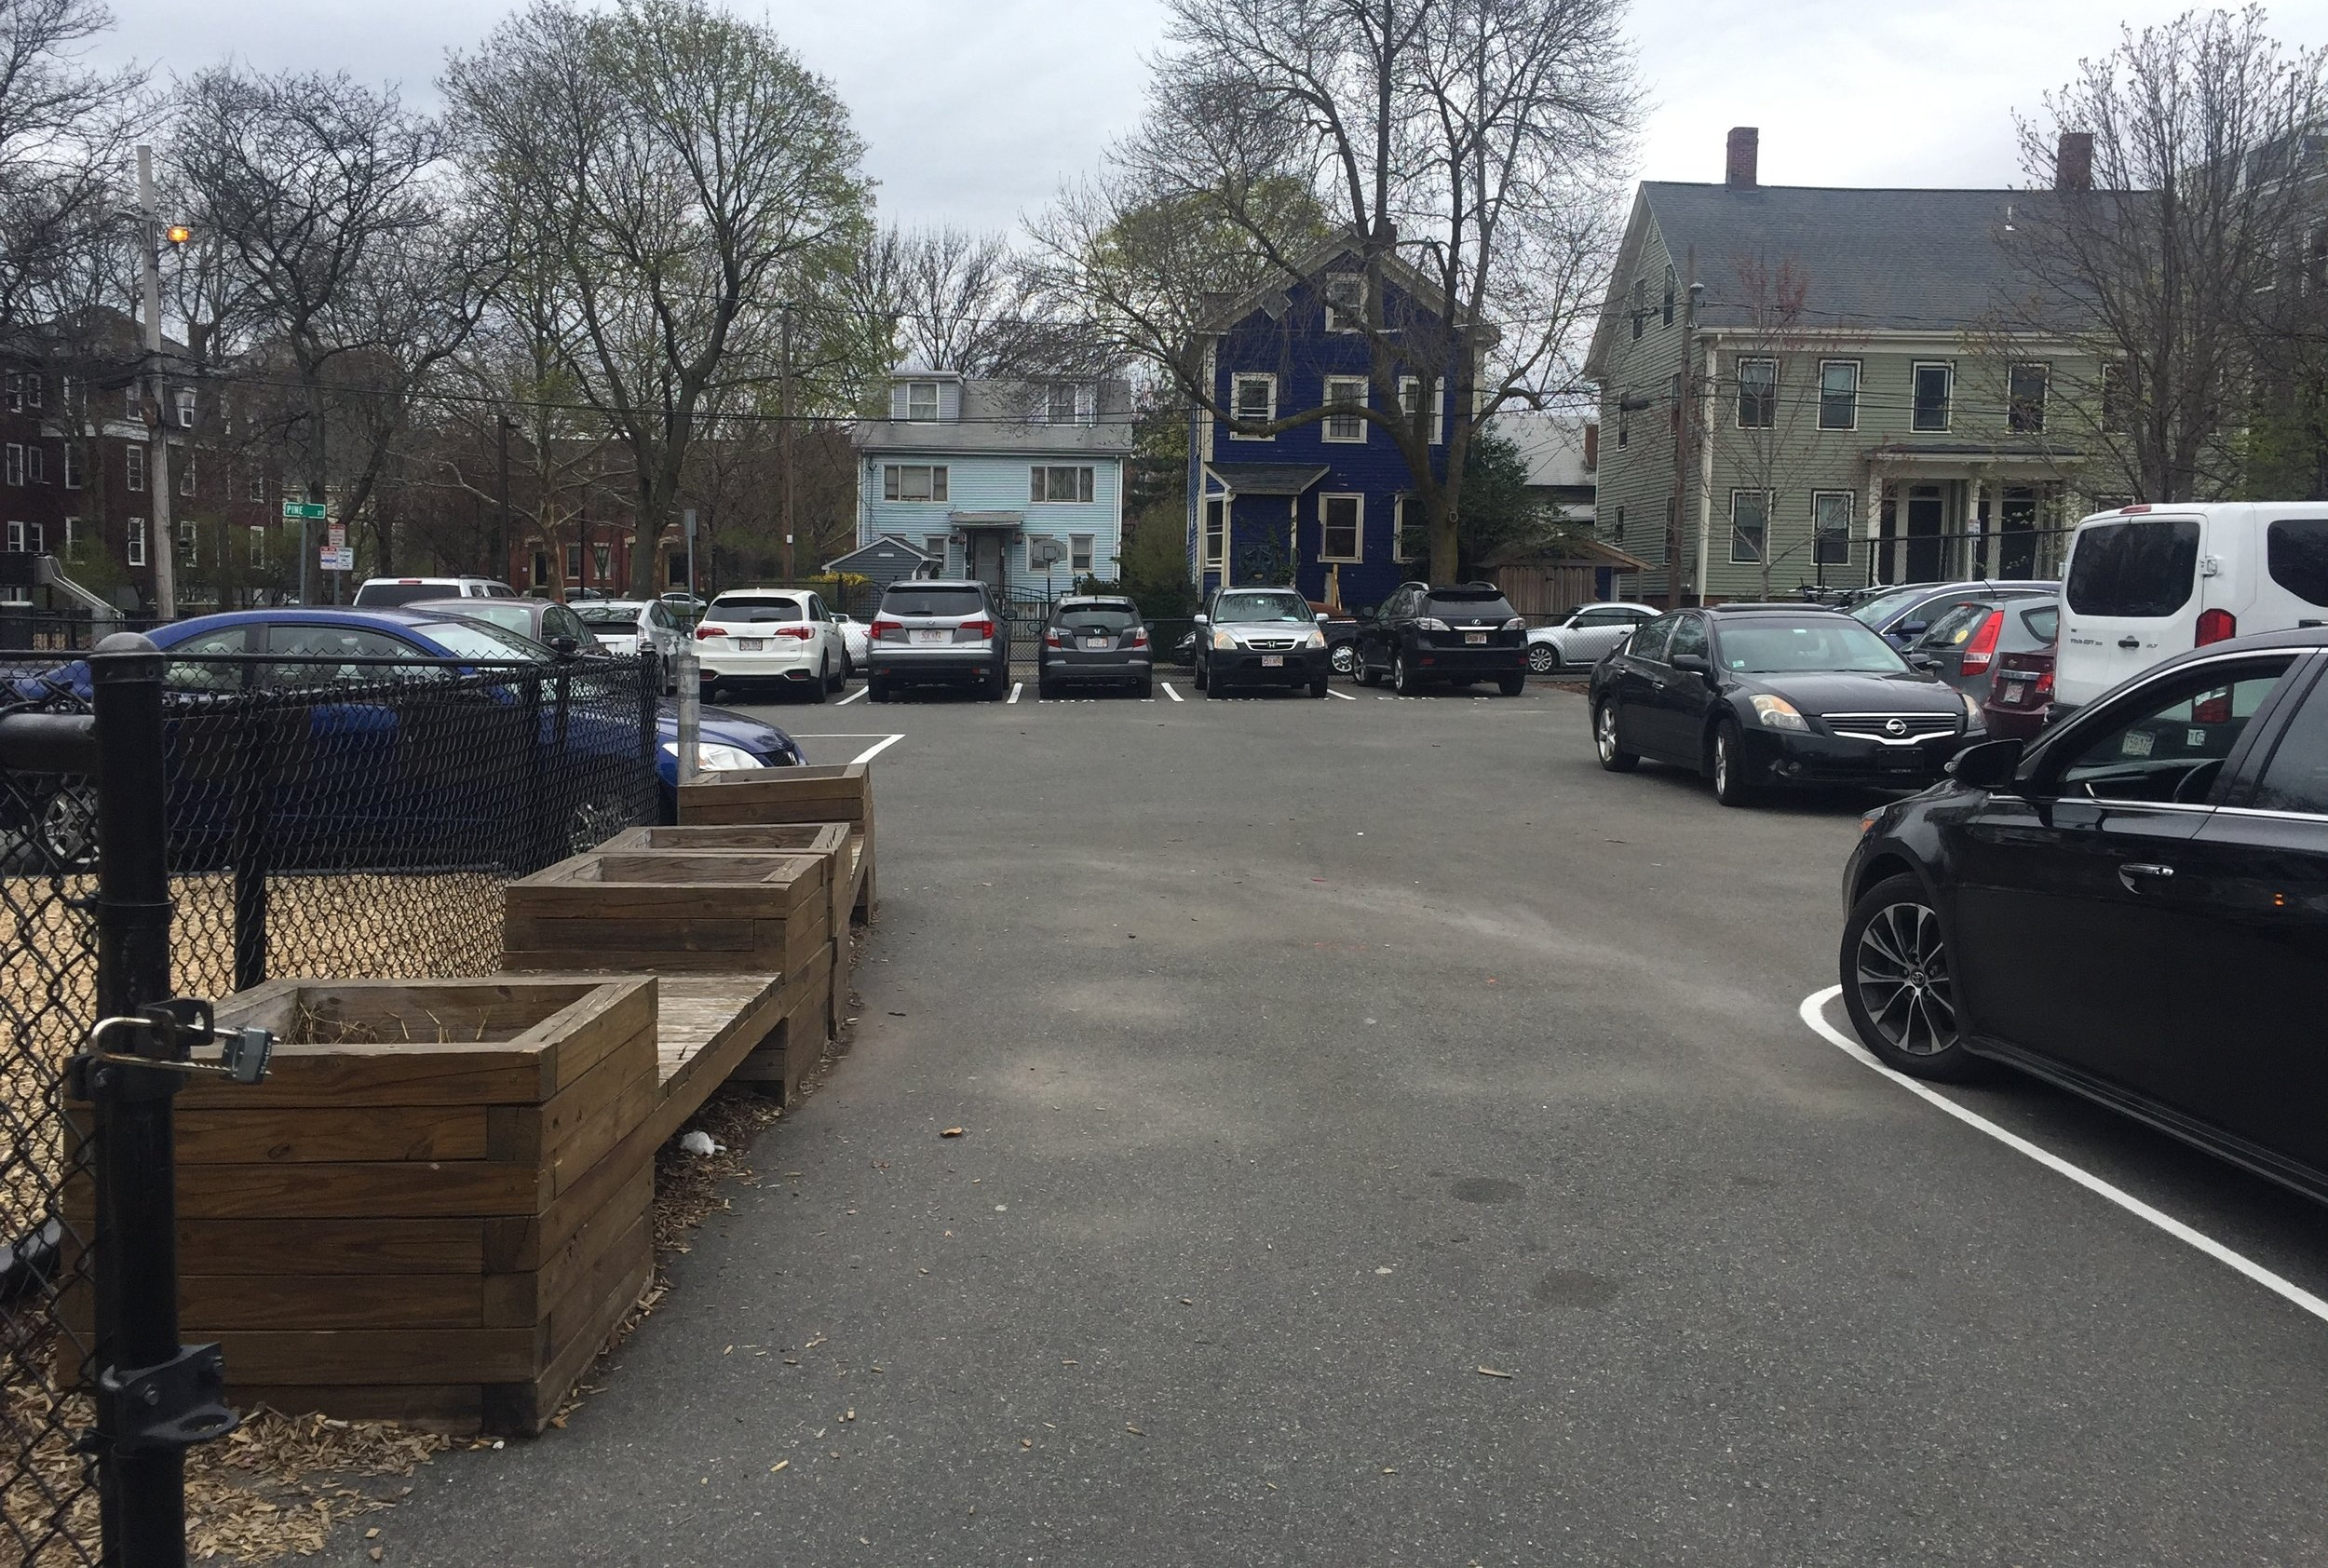 View of rear parking lot from back of historic house. The homes across from the far end of the lot are on Pine Street.